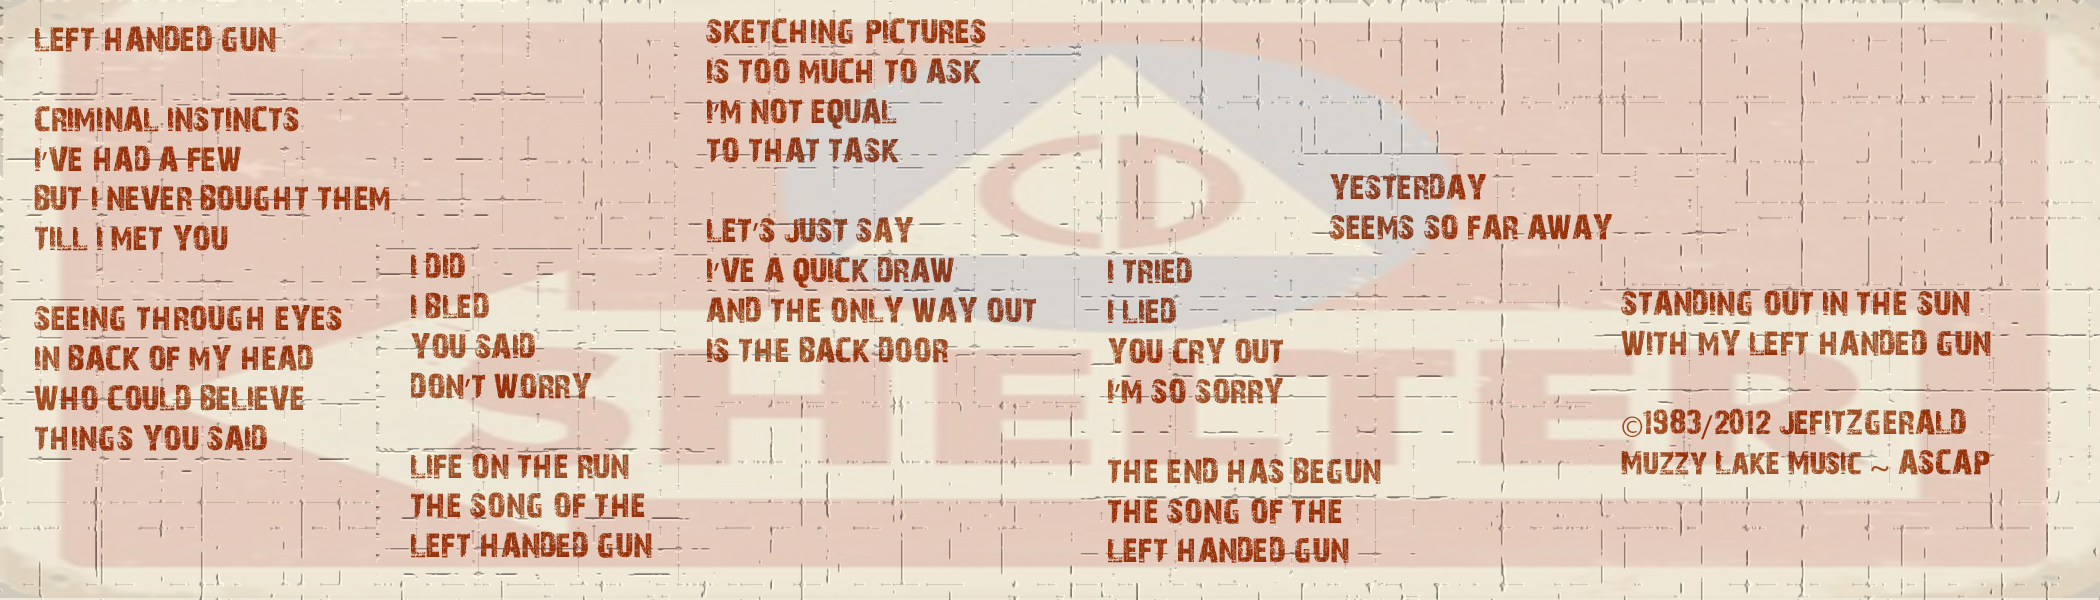 lyric block-horizontal-lefthanded gun-sign.jpg